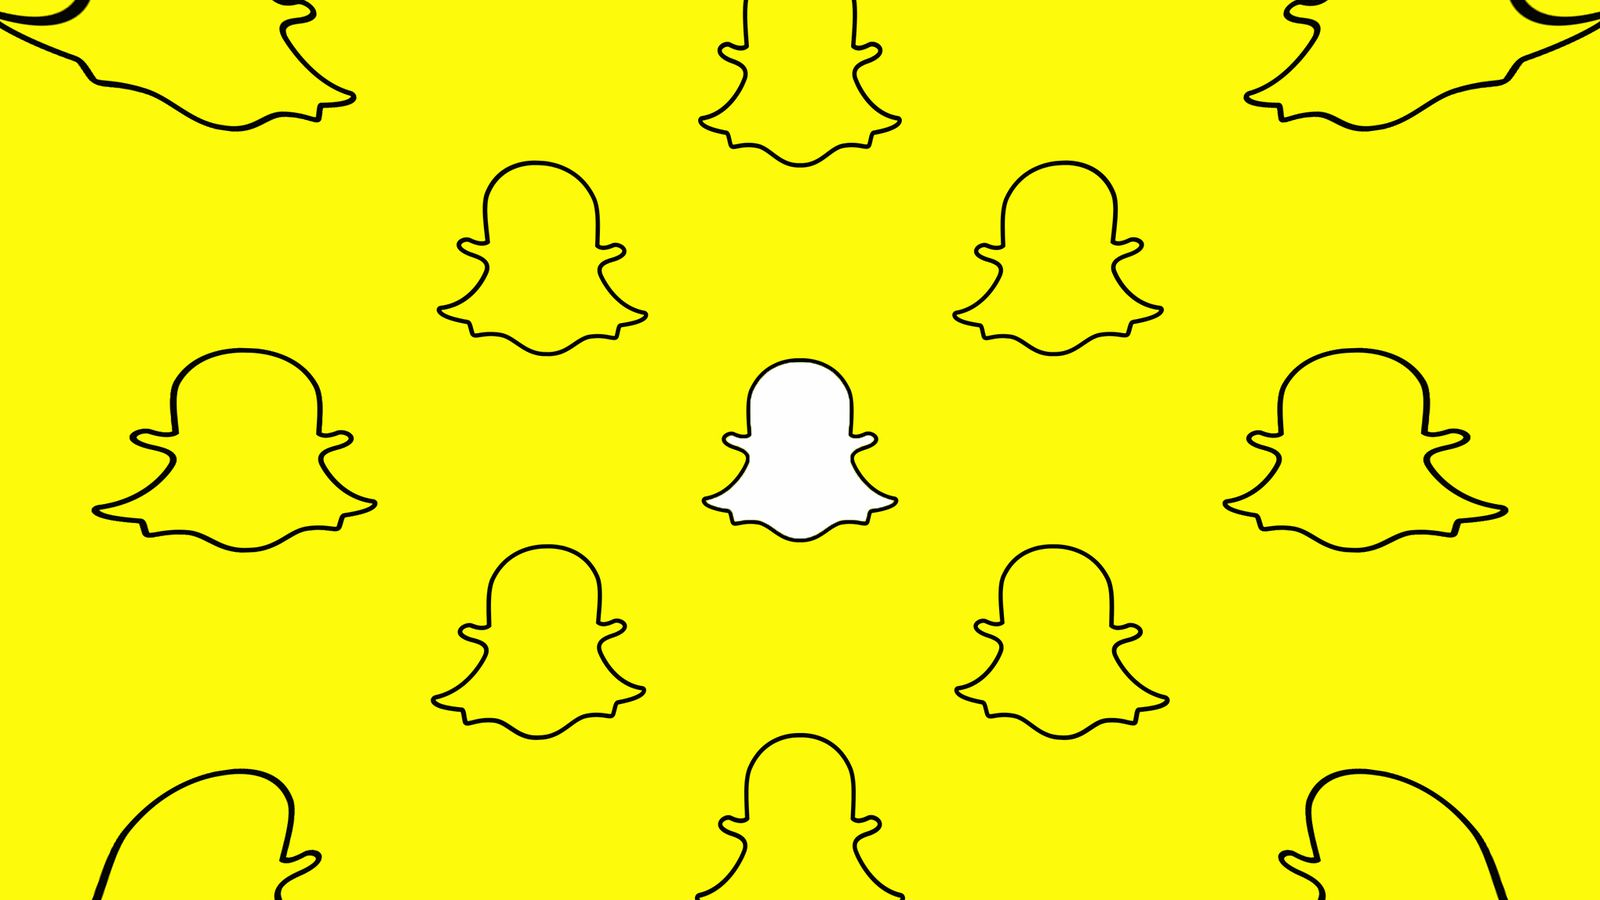 Snap chat and failed tech ipo